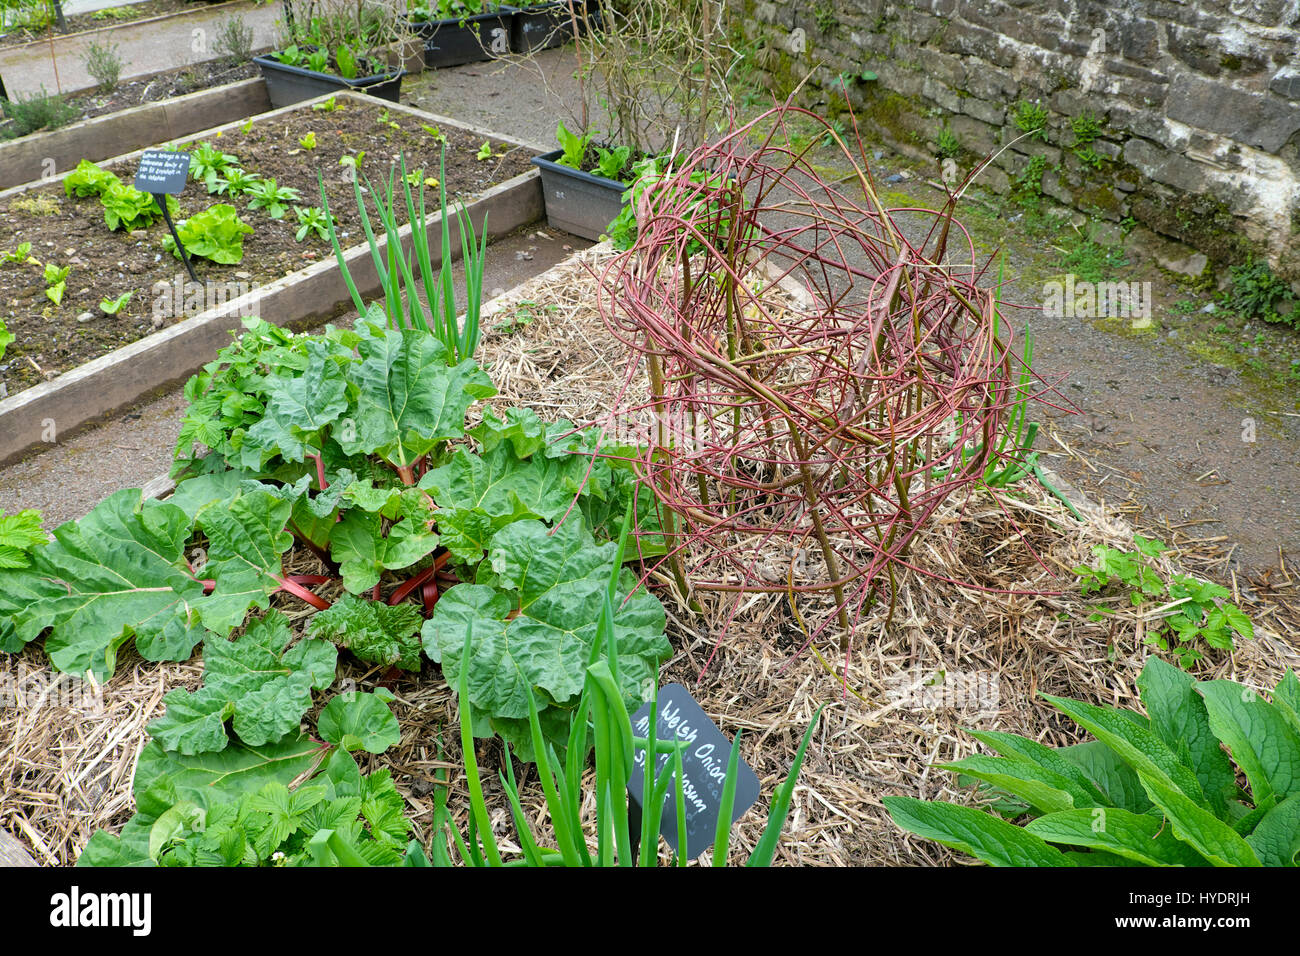 Rhubarb and woven dogwood stem structure in framed garden bed with straw mulch in spring at the National Botanic - Stock Image